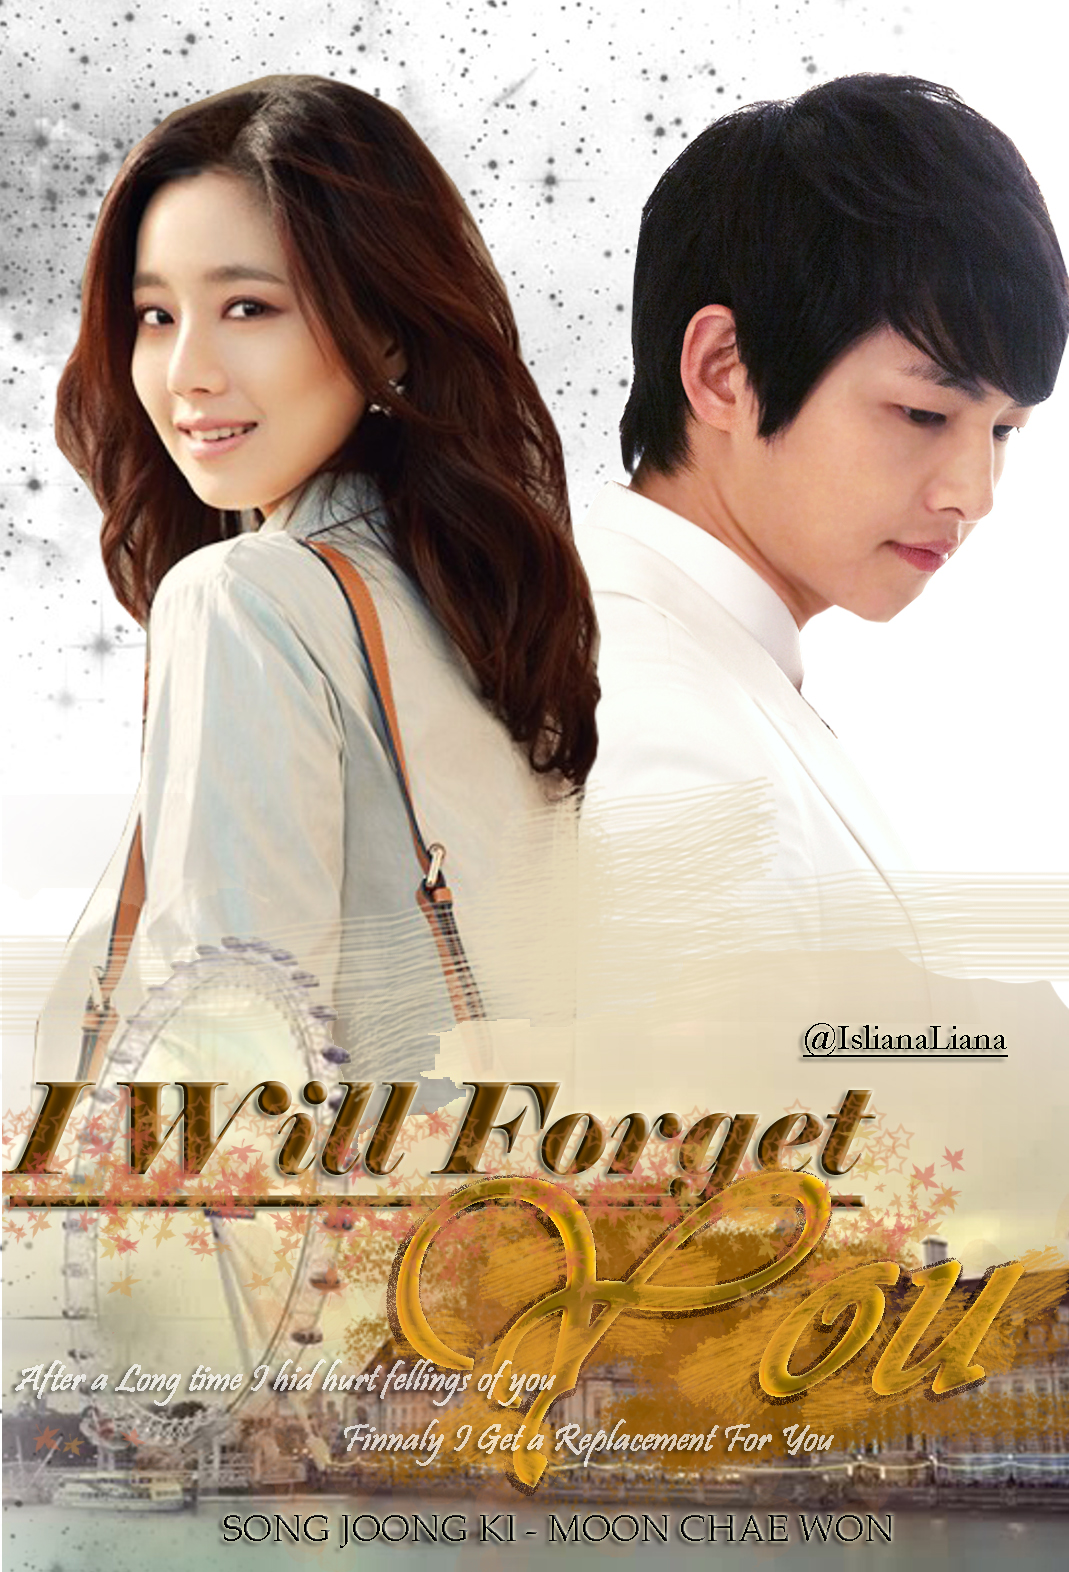 Ff song joong ki spesial appeareance sequel where is true love